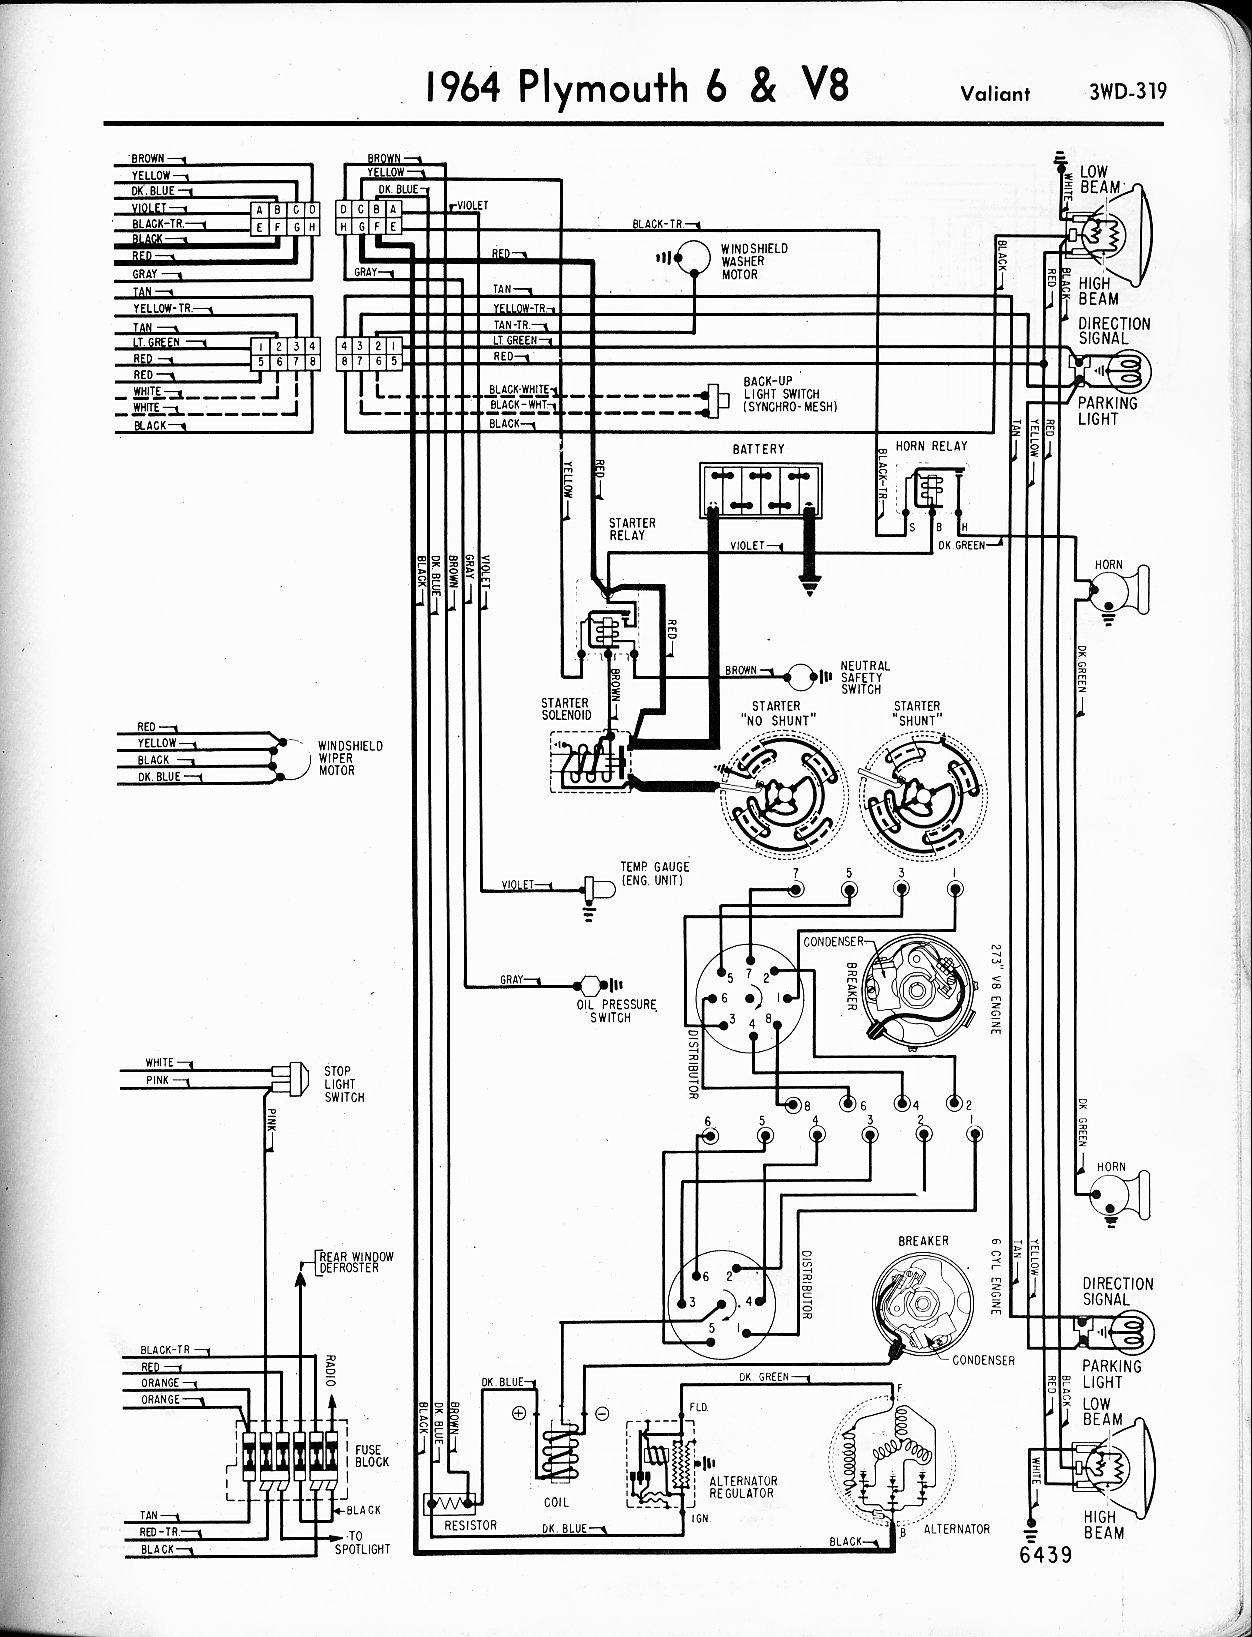 1971 Plymouth Fury Wiring Diagram Wire Data Schema 1975 Valiant Free Download 1969 Sport Circuit Symbols U2022 Rh Stripgore Com 1973 Duster